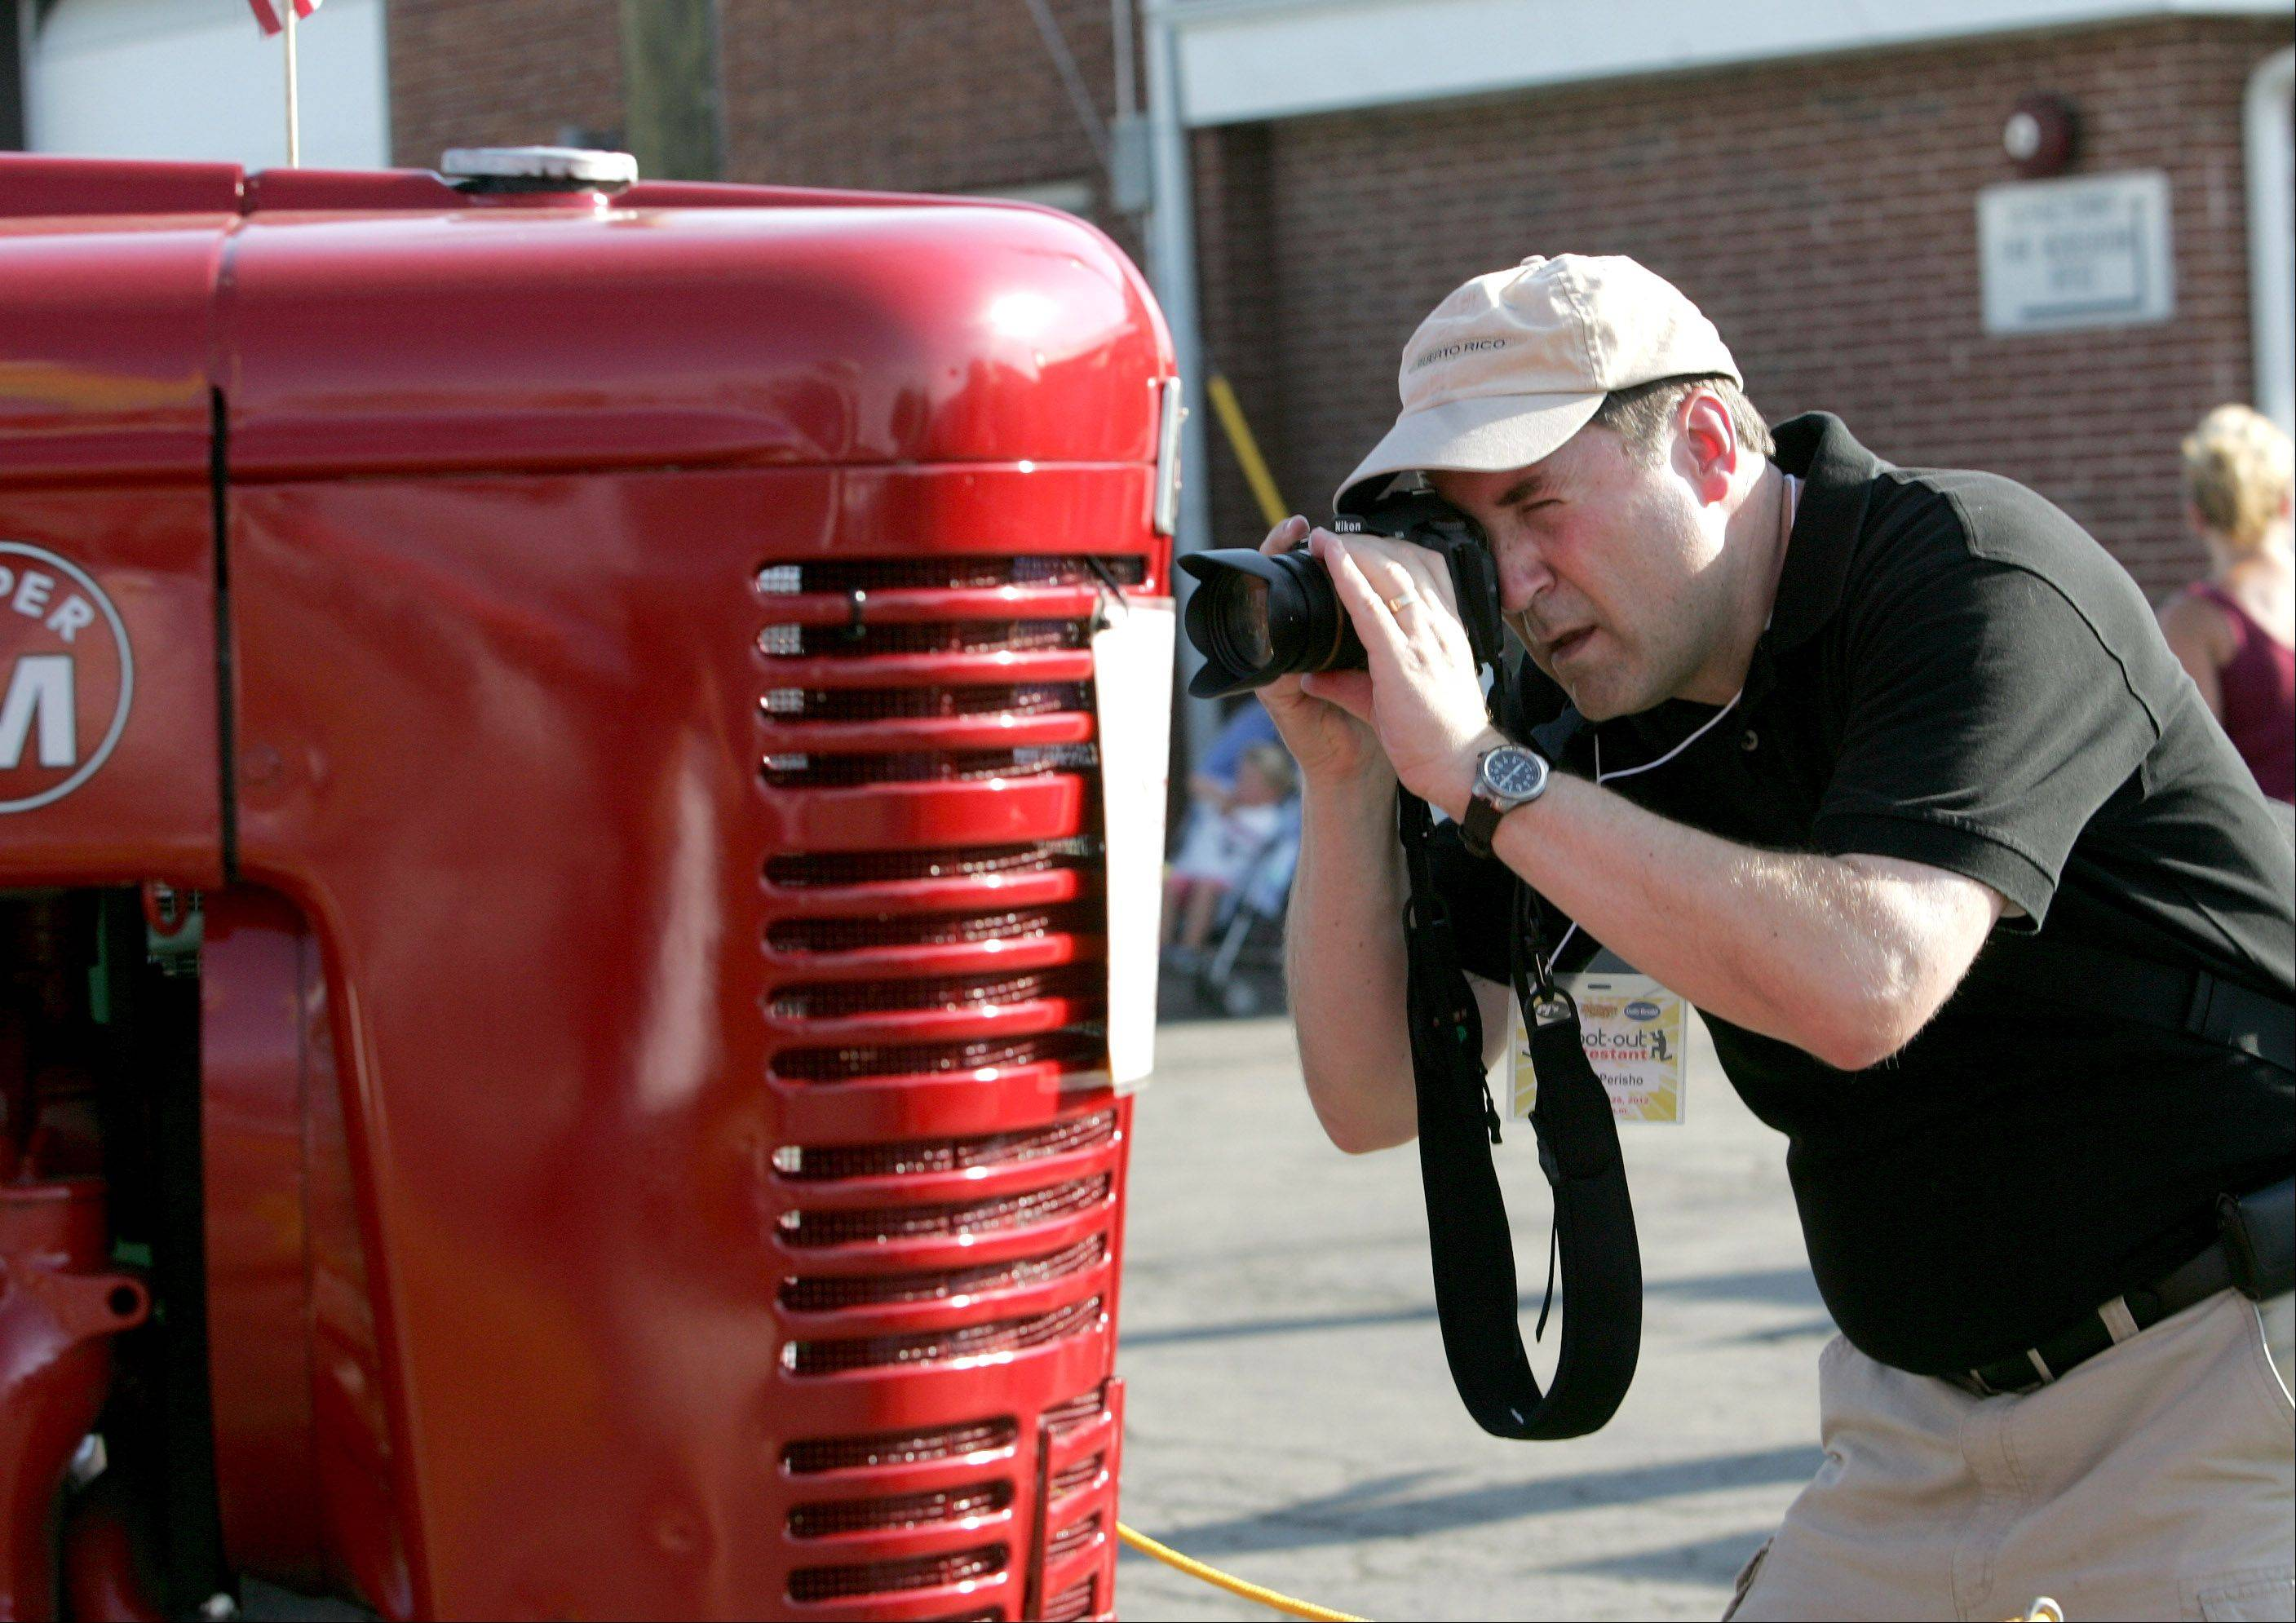 Gregory Perisho of Warrenville moves in to get a shot of a tractor during the photography Shoot Out competition during the opening day of the DuPage County Fair in Wheaton on Wednesday.